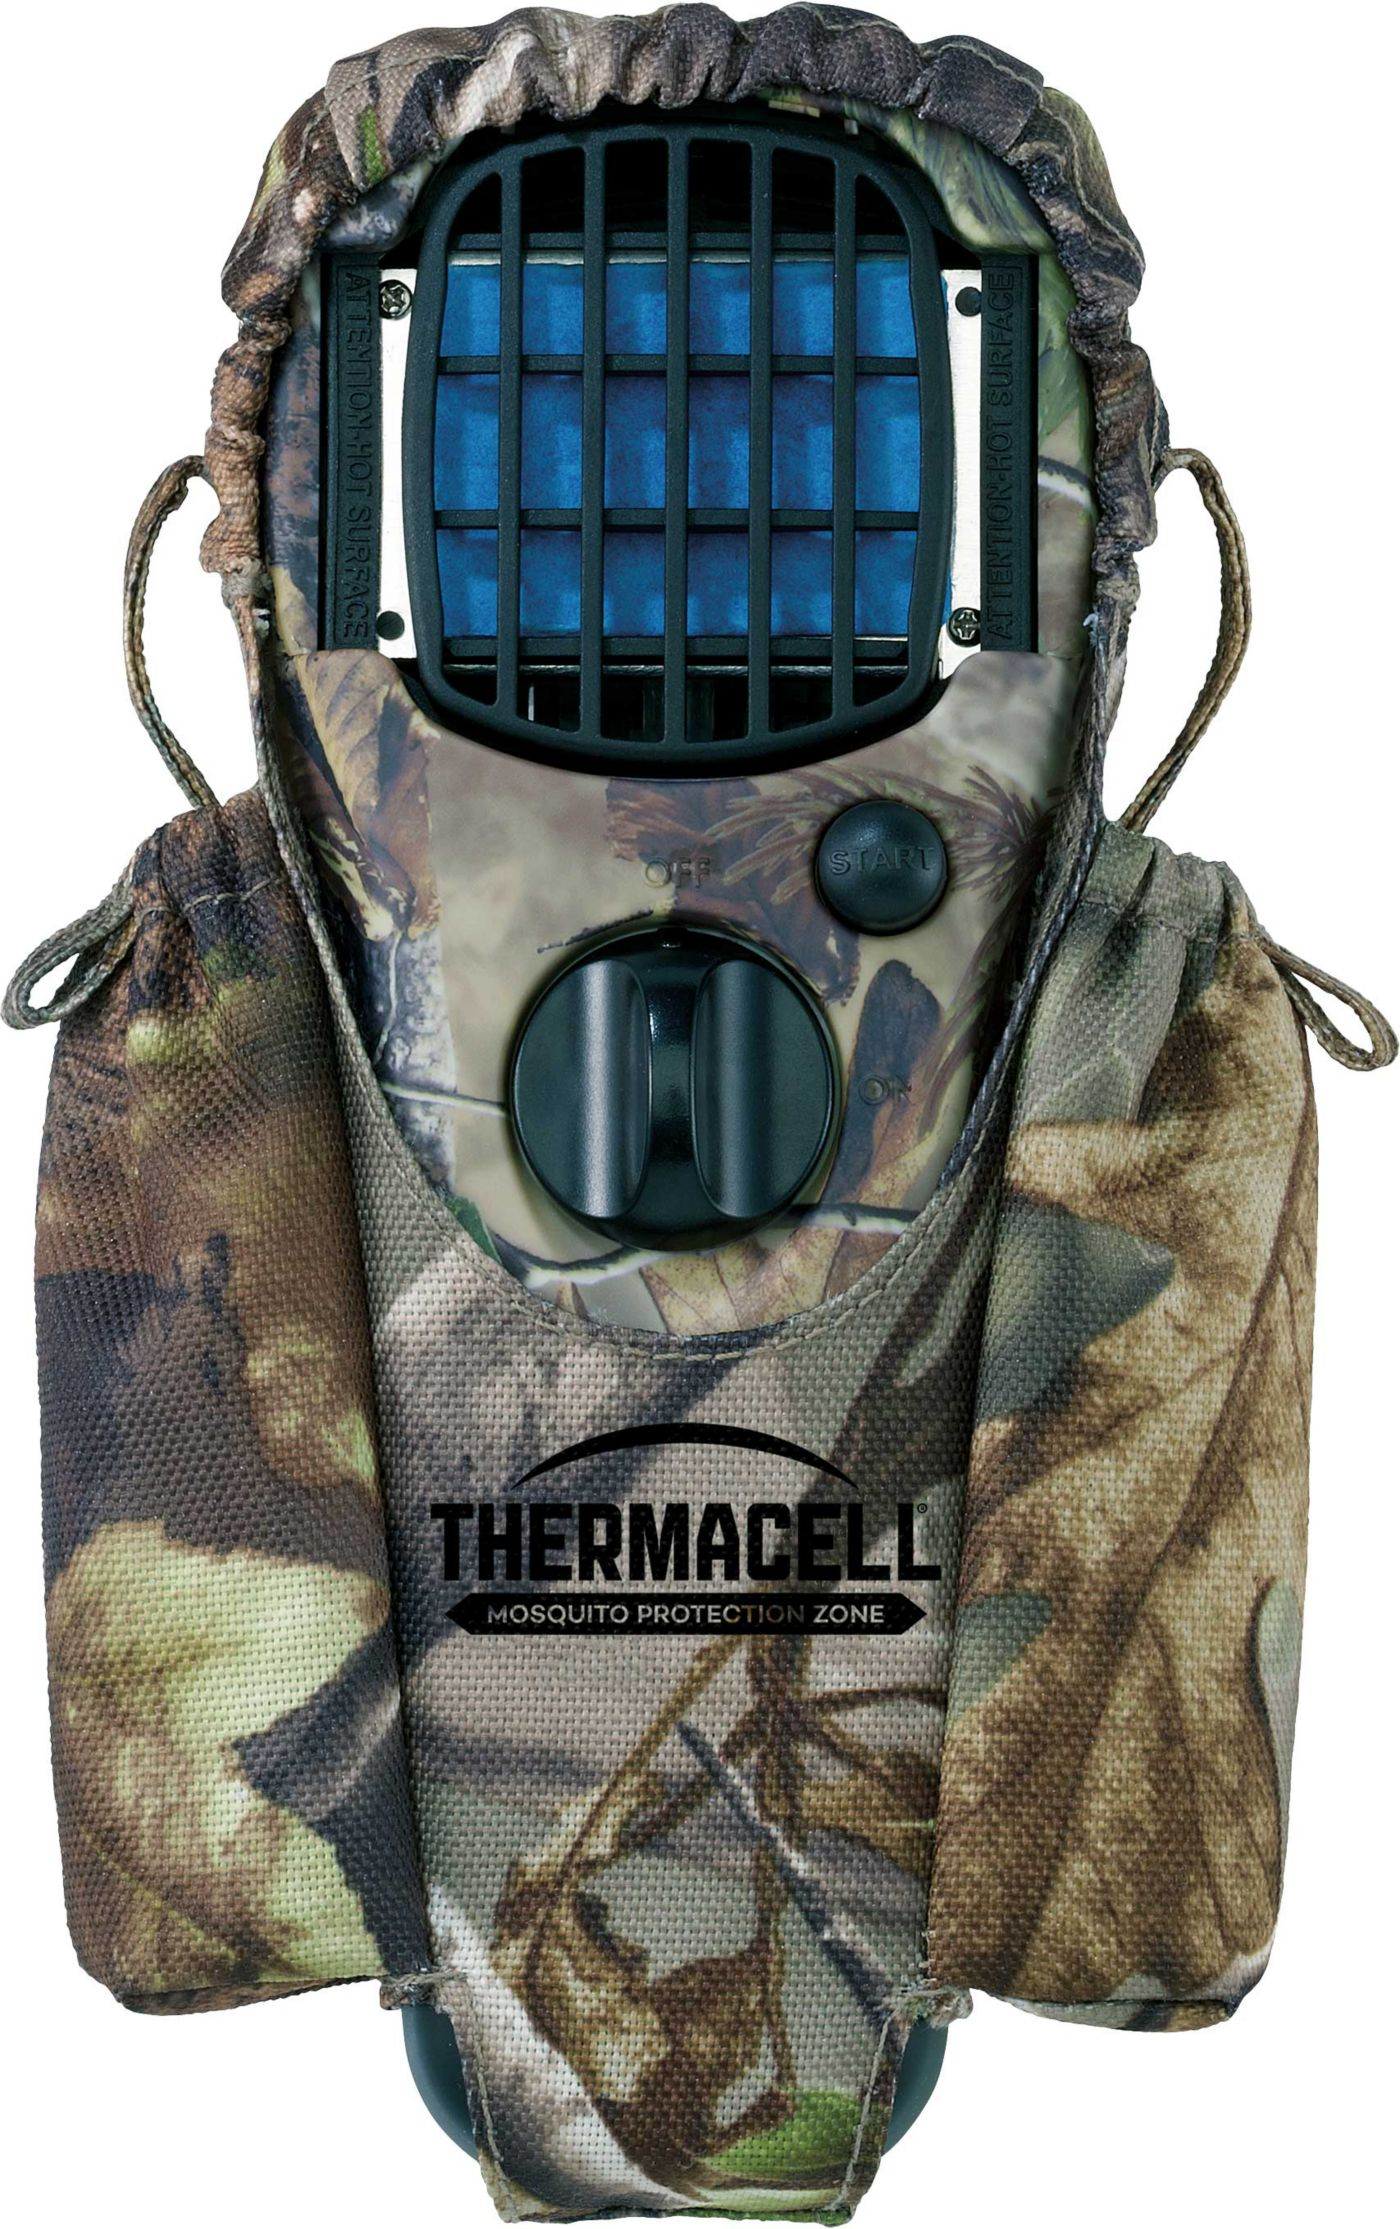 ThermaCELL RealTree Mosquito Repellent Appliance Holster with Clip